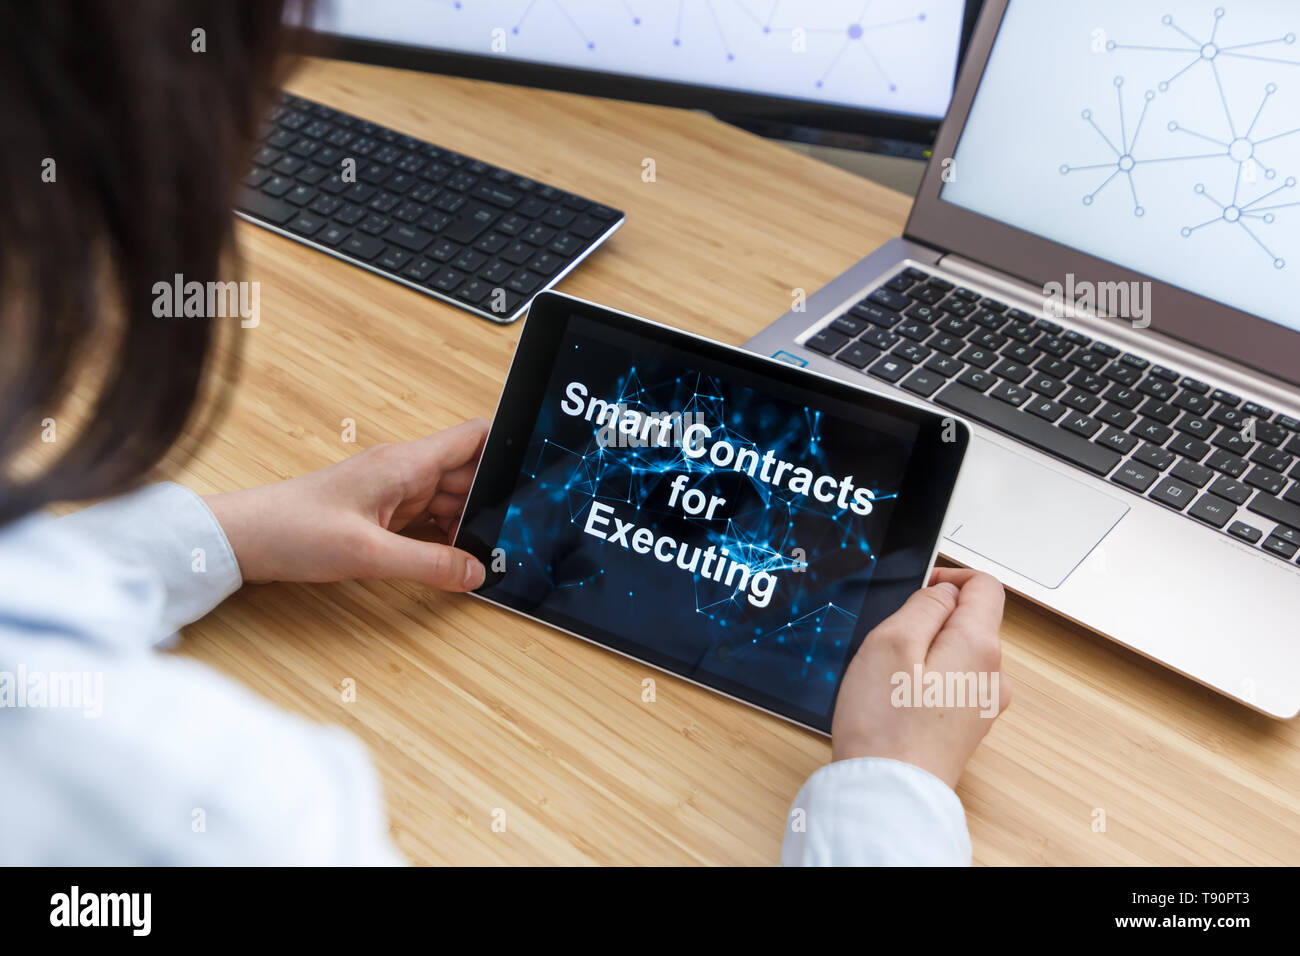 Business Female Using Smart Contracts For Executing. Illustration of Ethereum Blockchain on the Screen of Tablet, PC and Laptop. - Stock Image